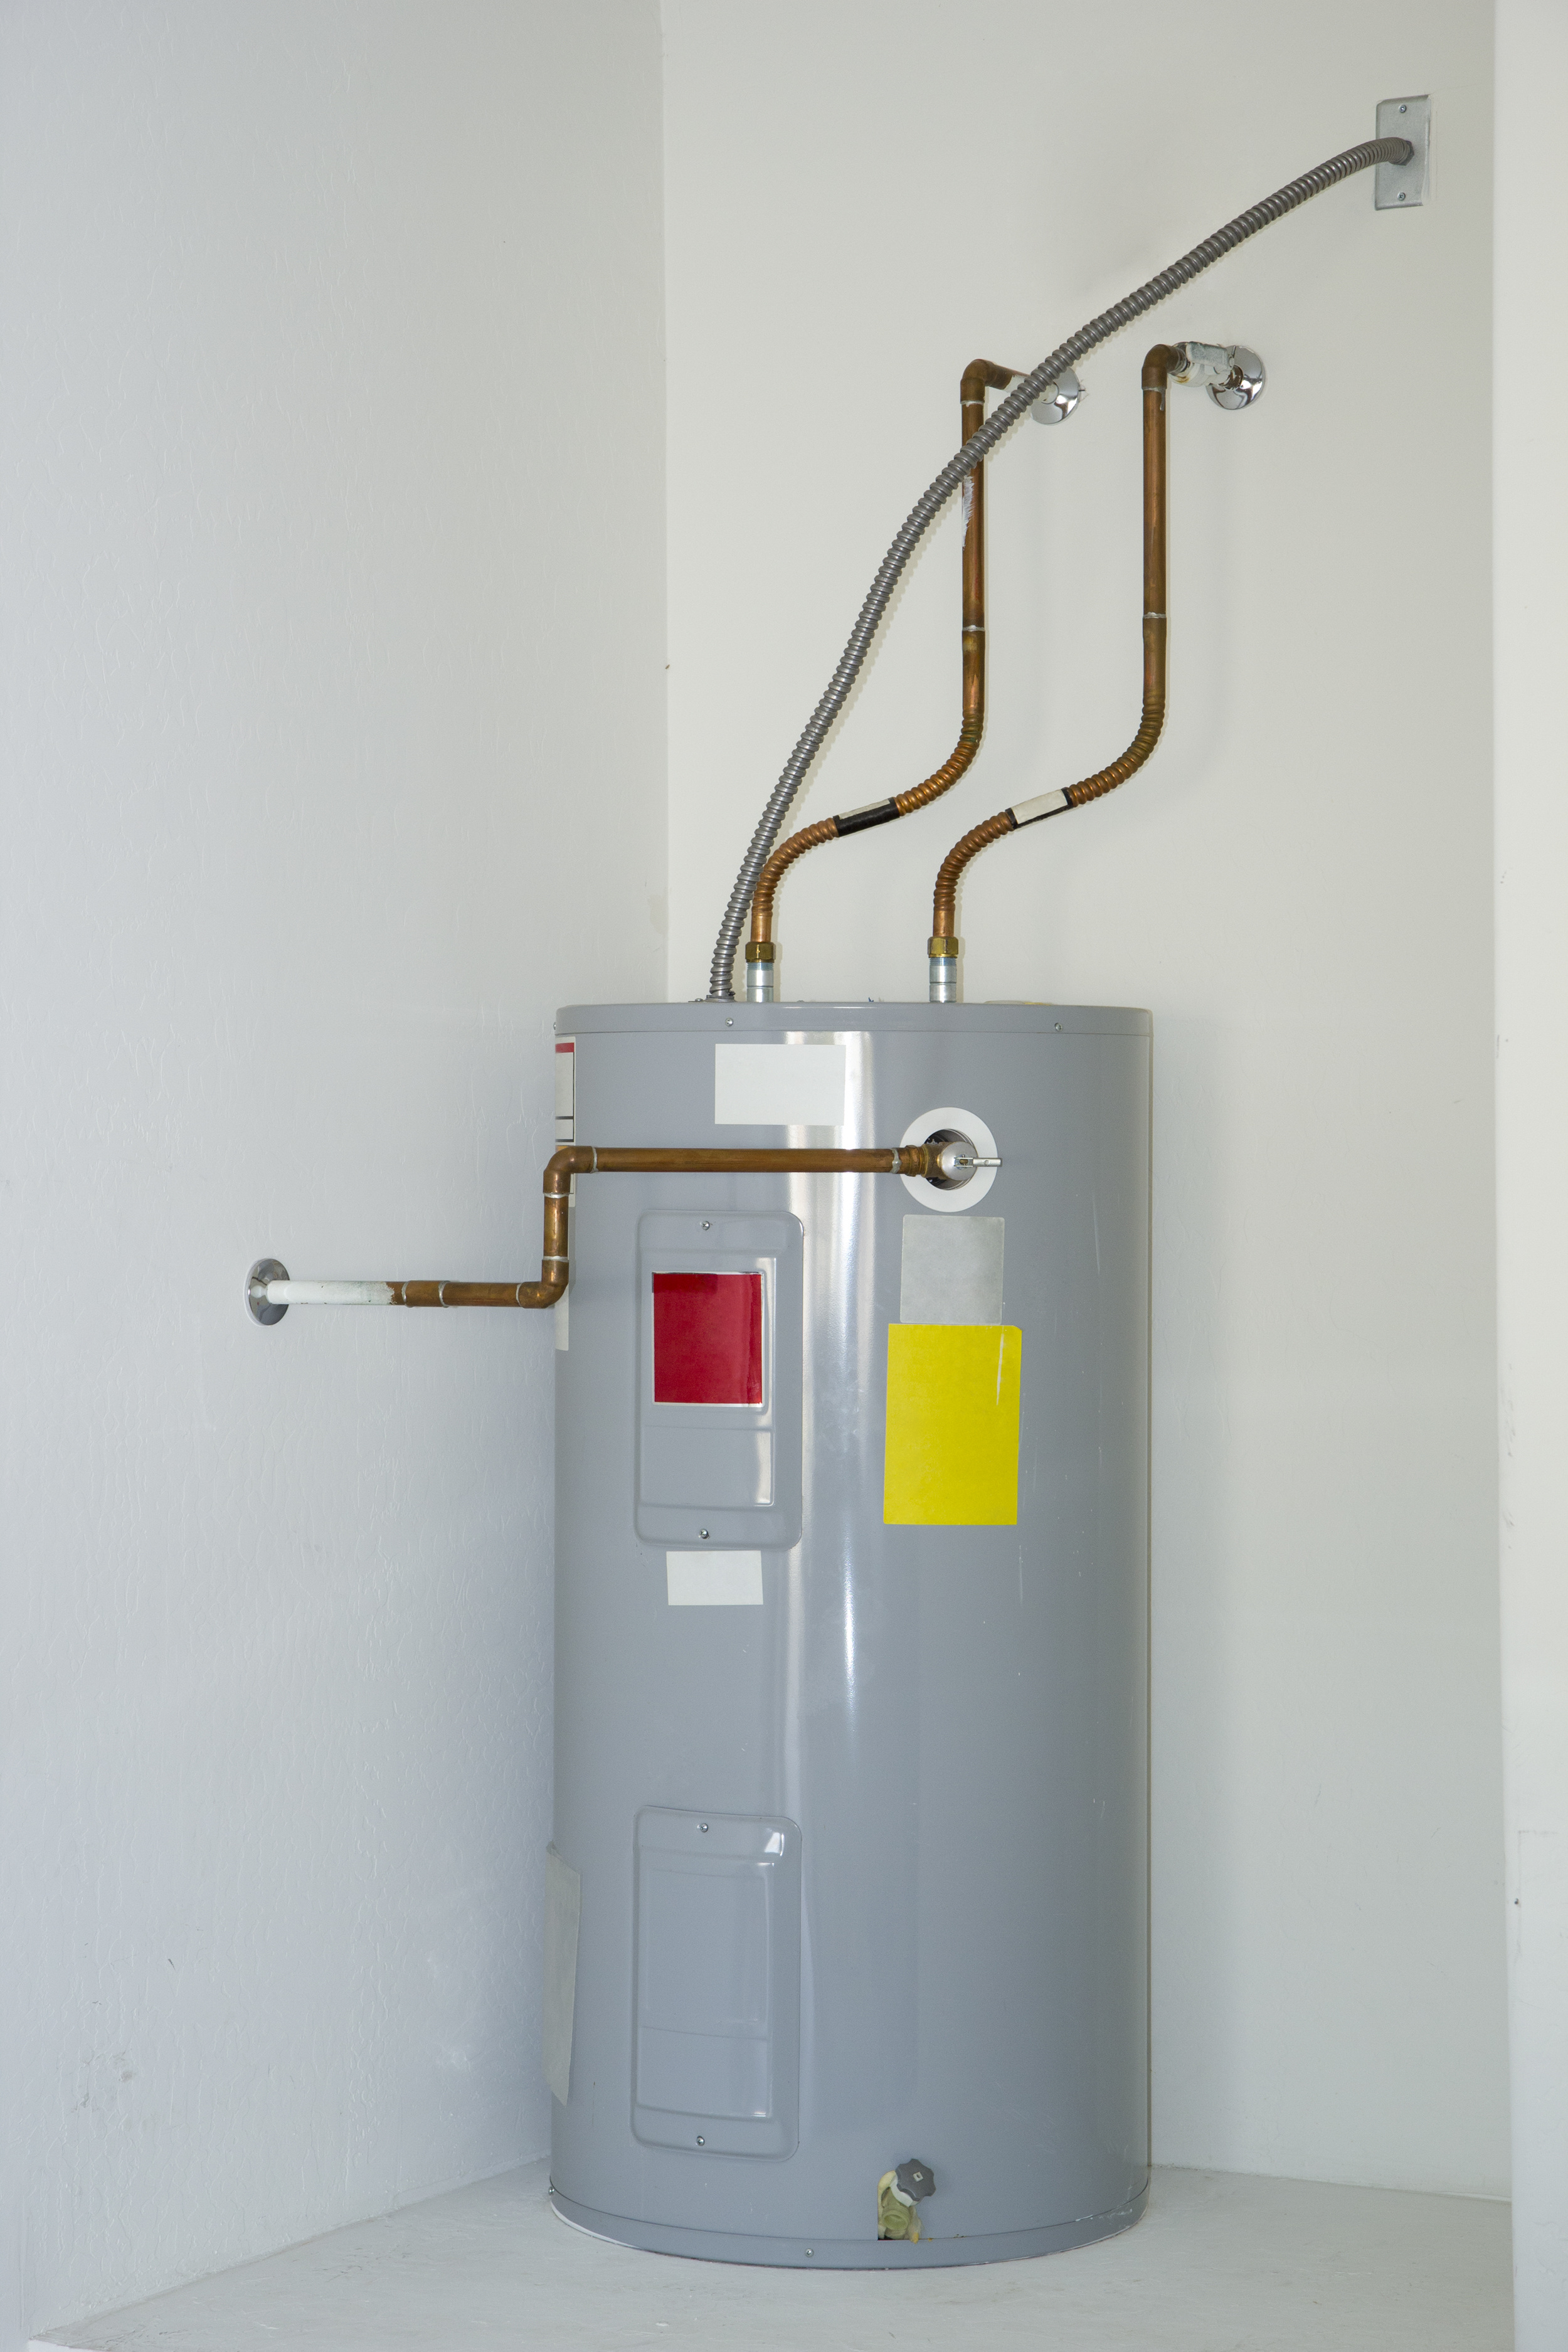 9% of all water heater failures occur in unoccupied homes. Damage can cost on average $4,444 and may not be covered by insurance.  – Institute for Business & Home Safety  www.disastersafety.org